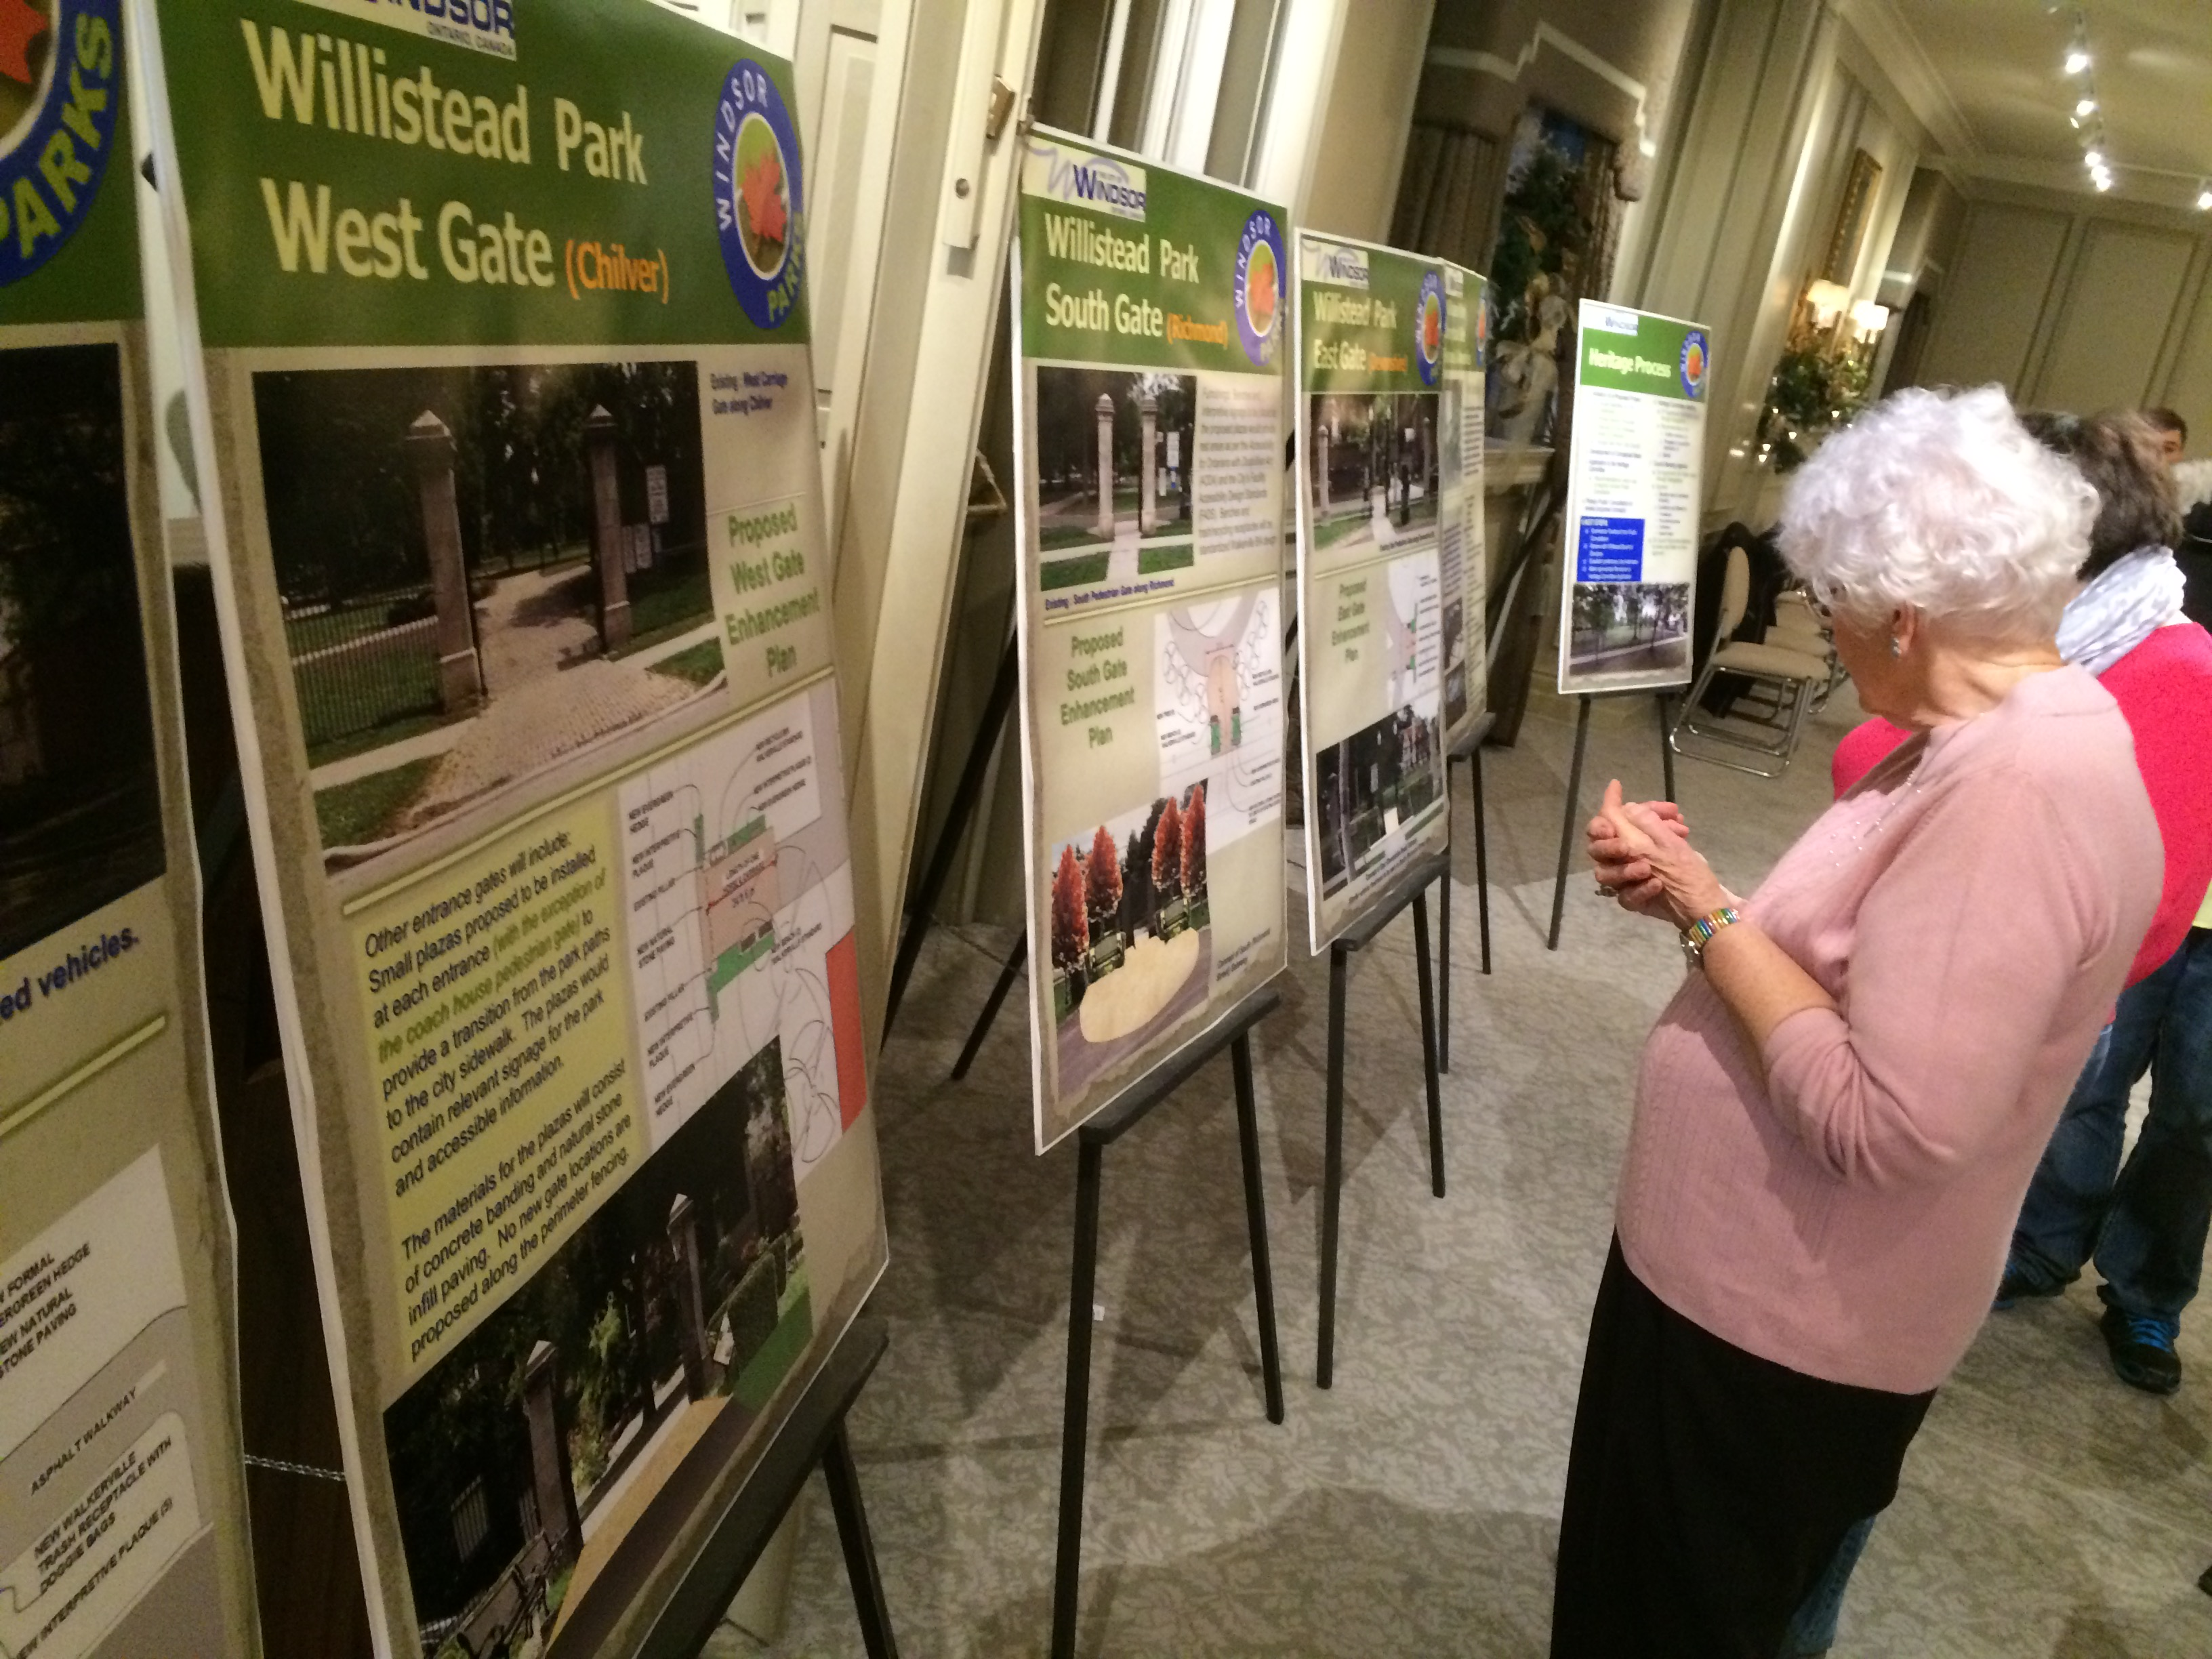 Residents attend an open house on December 9, 2014 to see the city's planned improvements for Willistead Park. (Photo by Jason Viau)